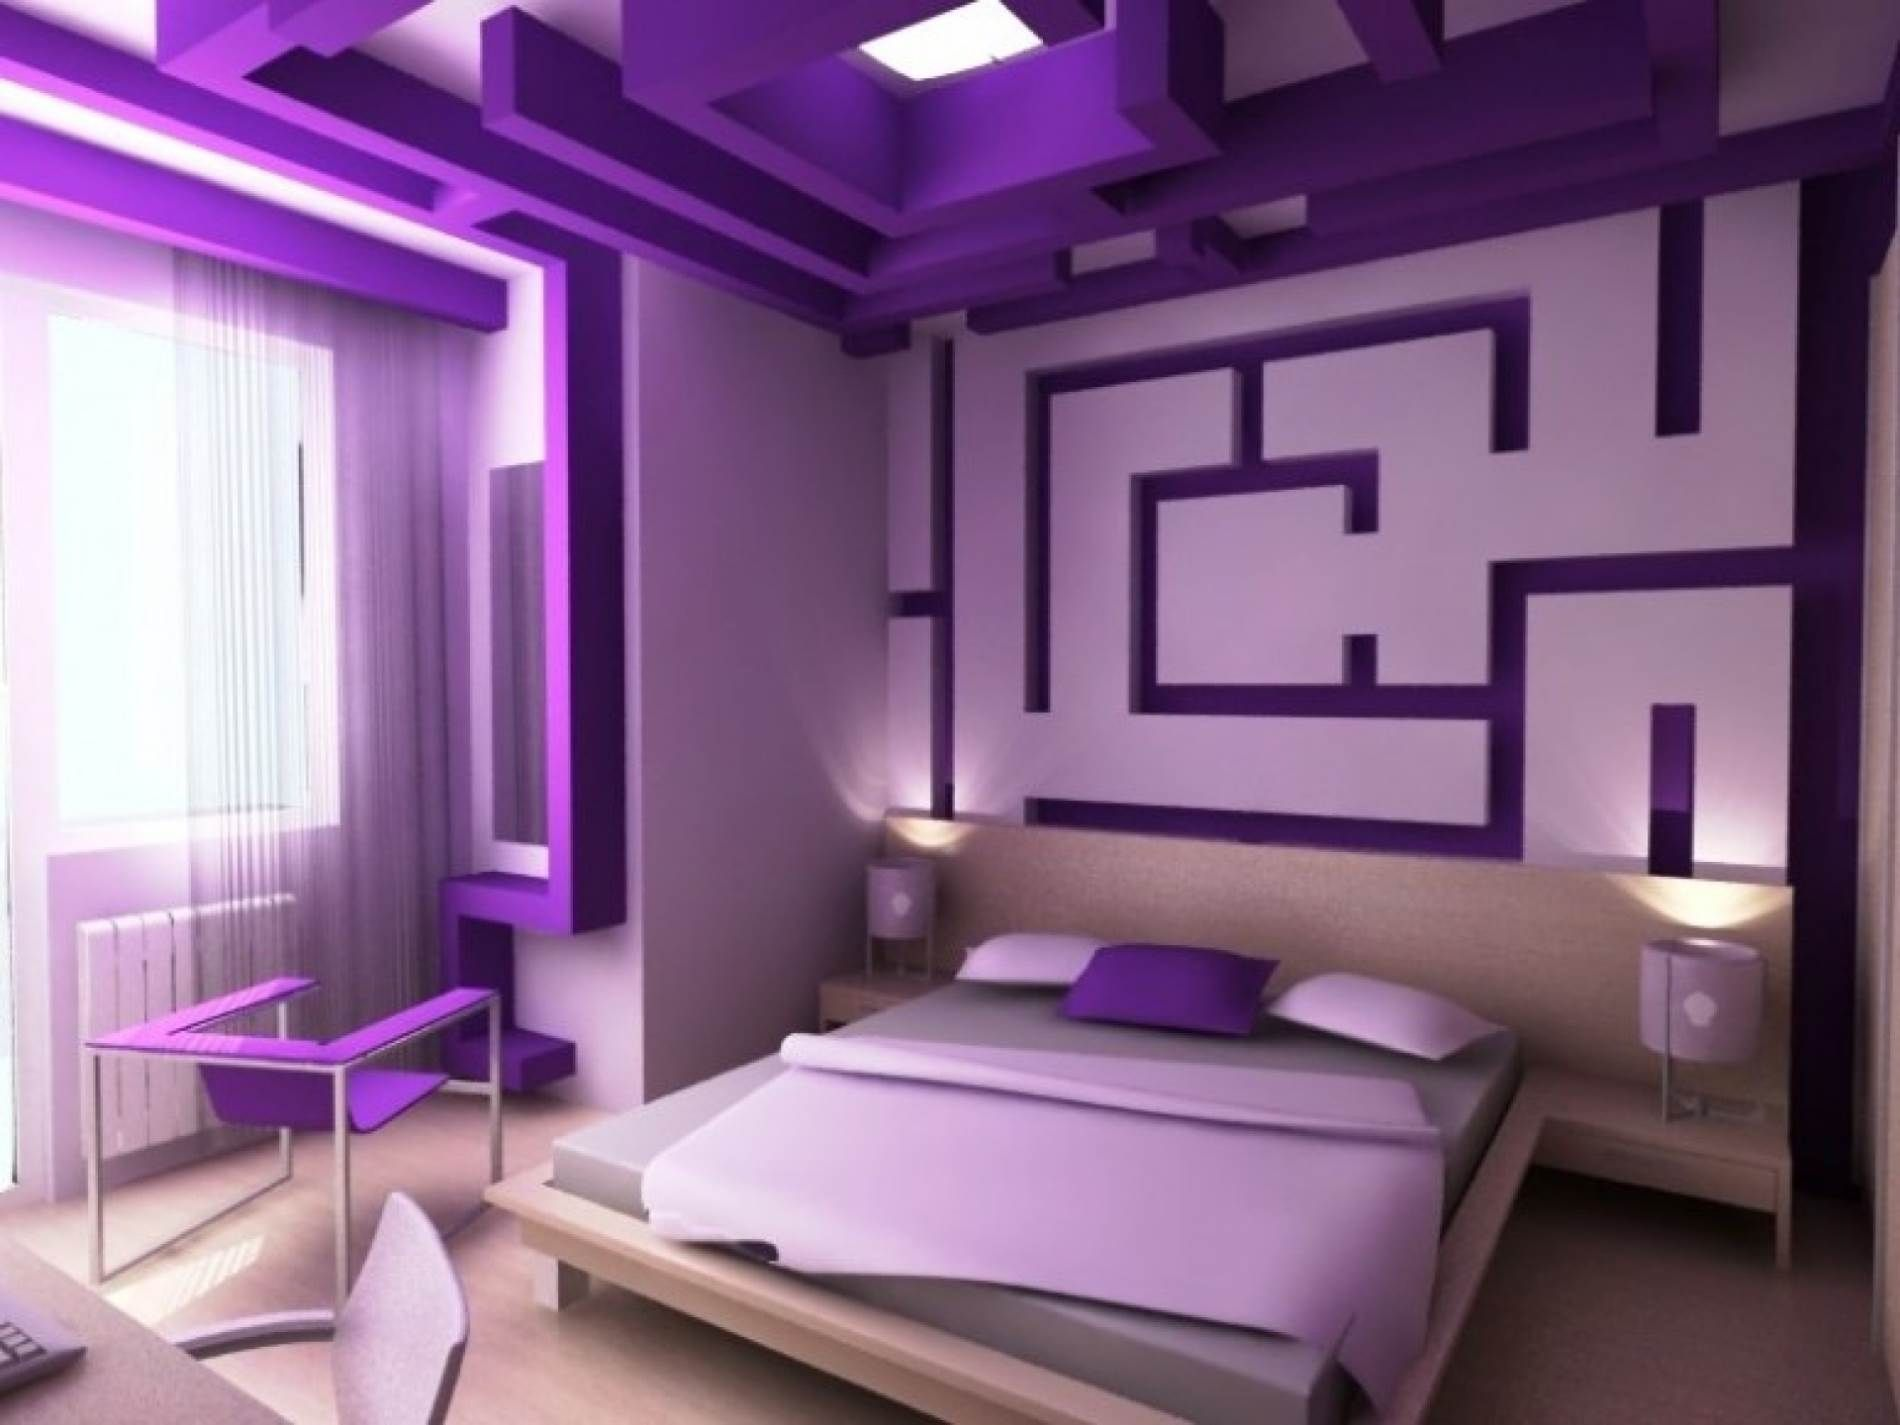 Wall Painting Ideas With Tape Home Interior Design Ideas Purple Bedroom Design Purple Bedrooms Awesome Bedrooms